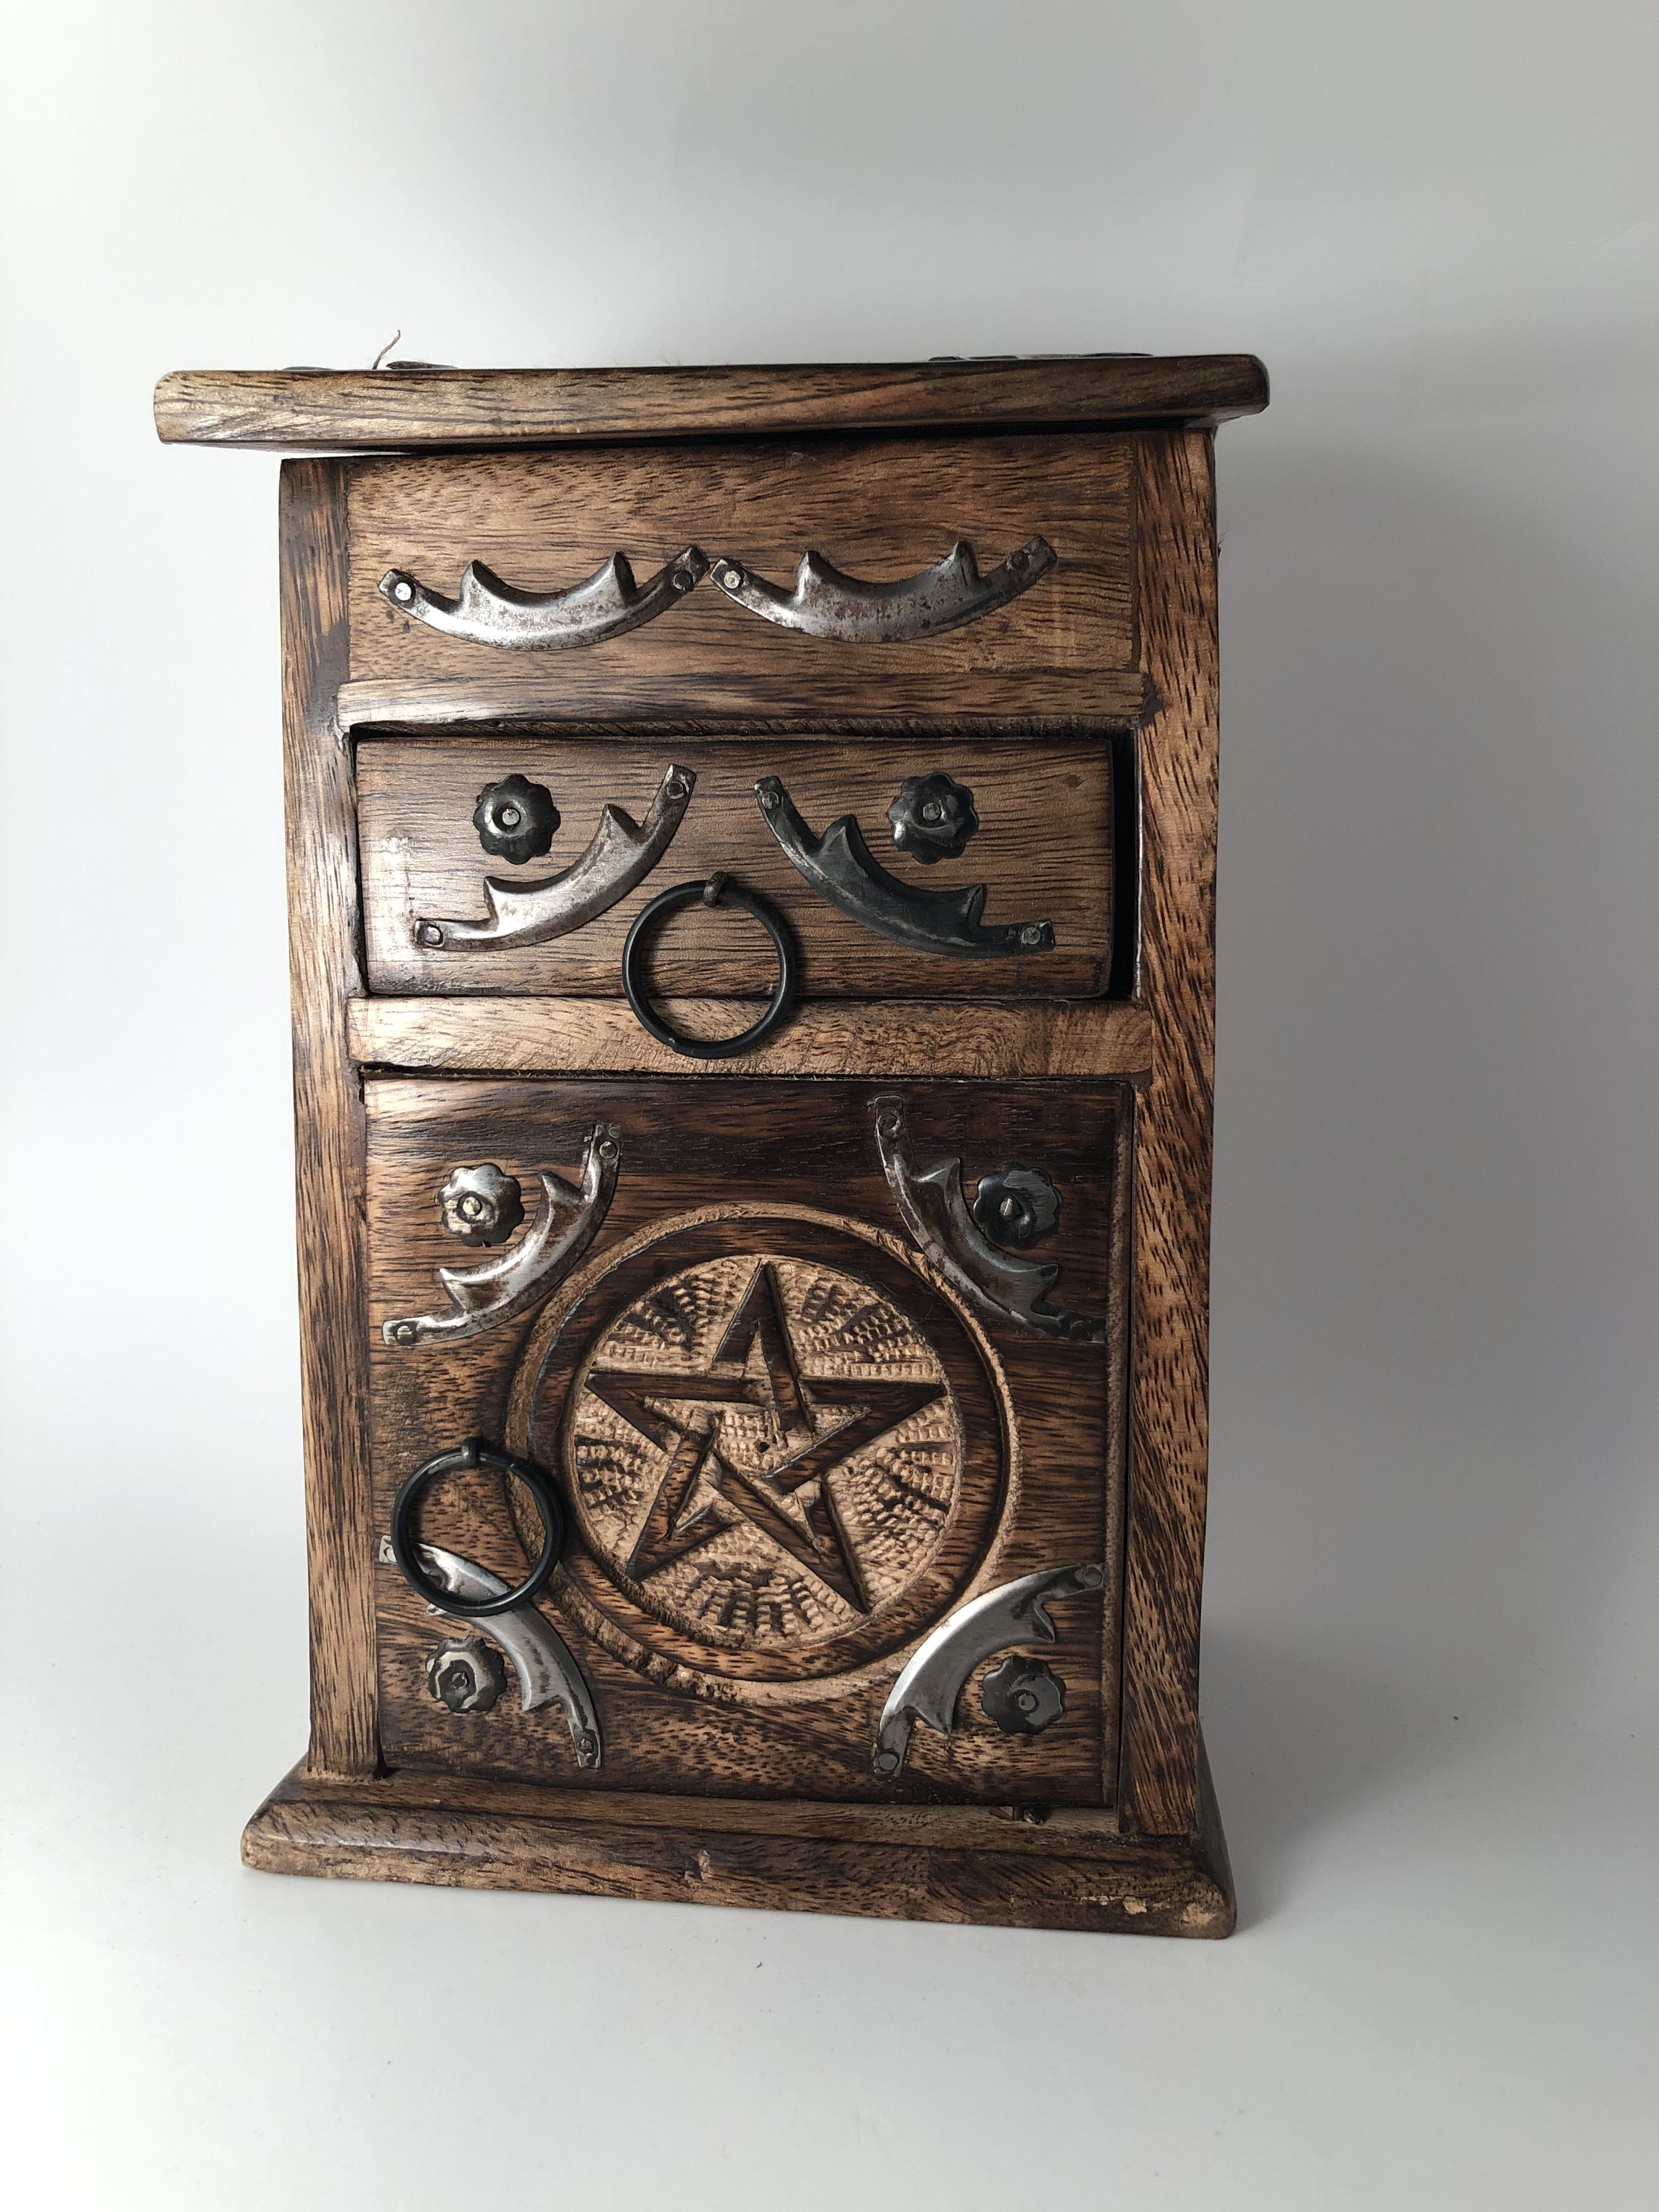 Pentagram Herb Cupboard Carved Wood Apothecary Witches Cabinet